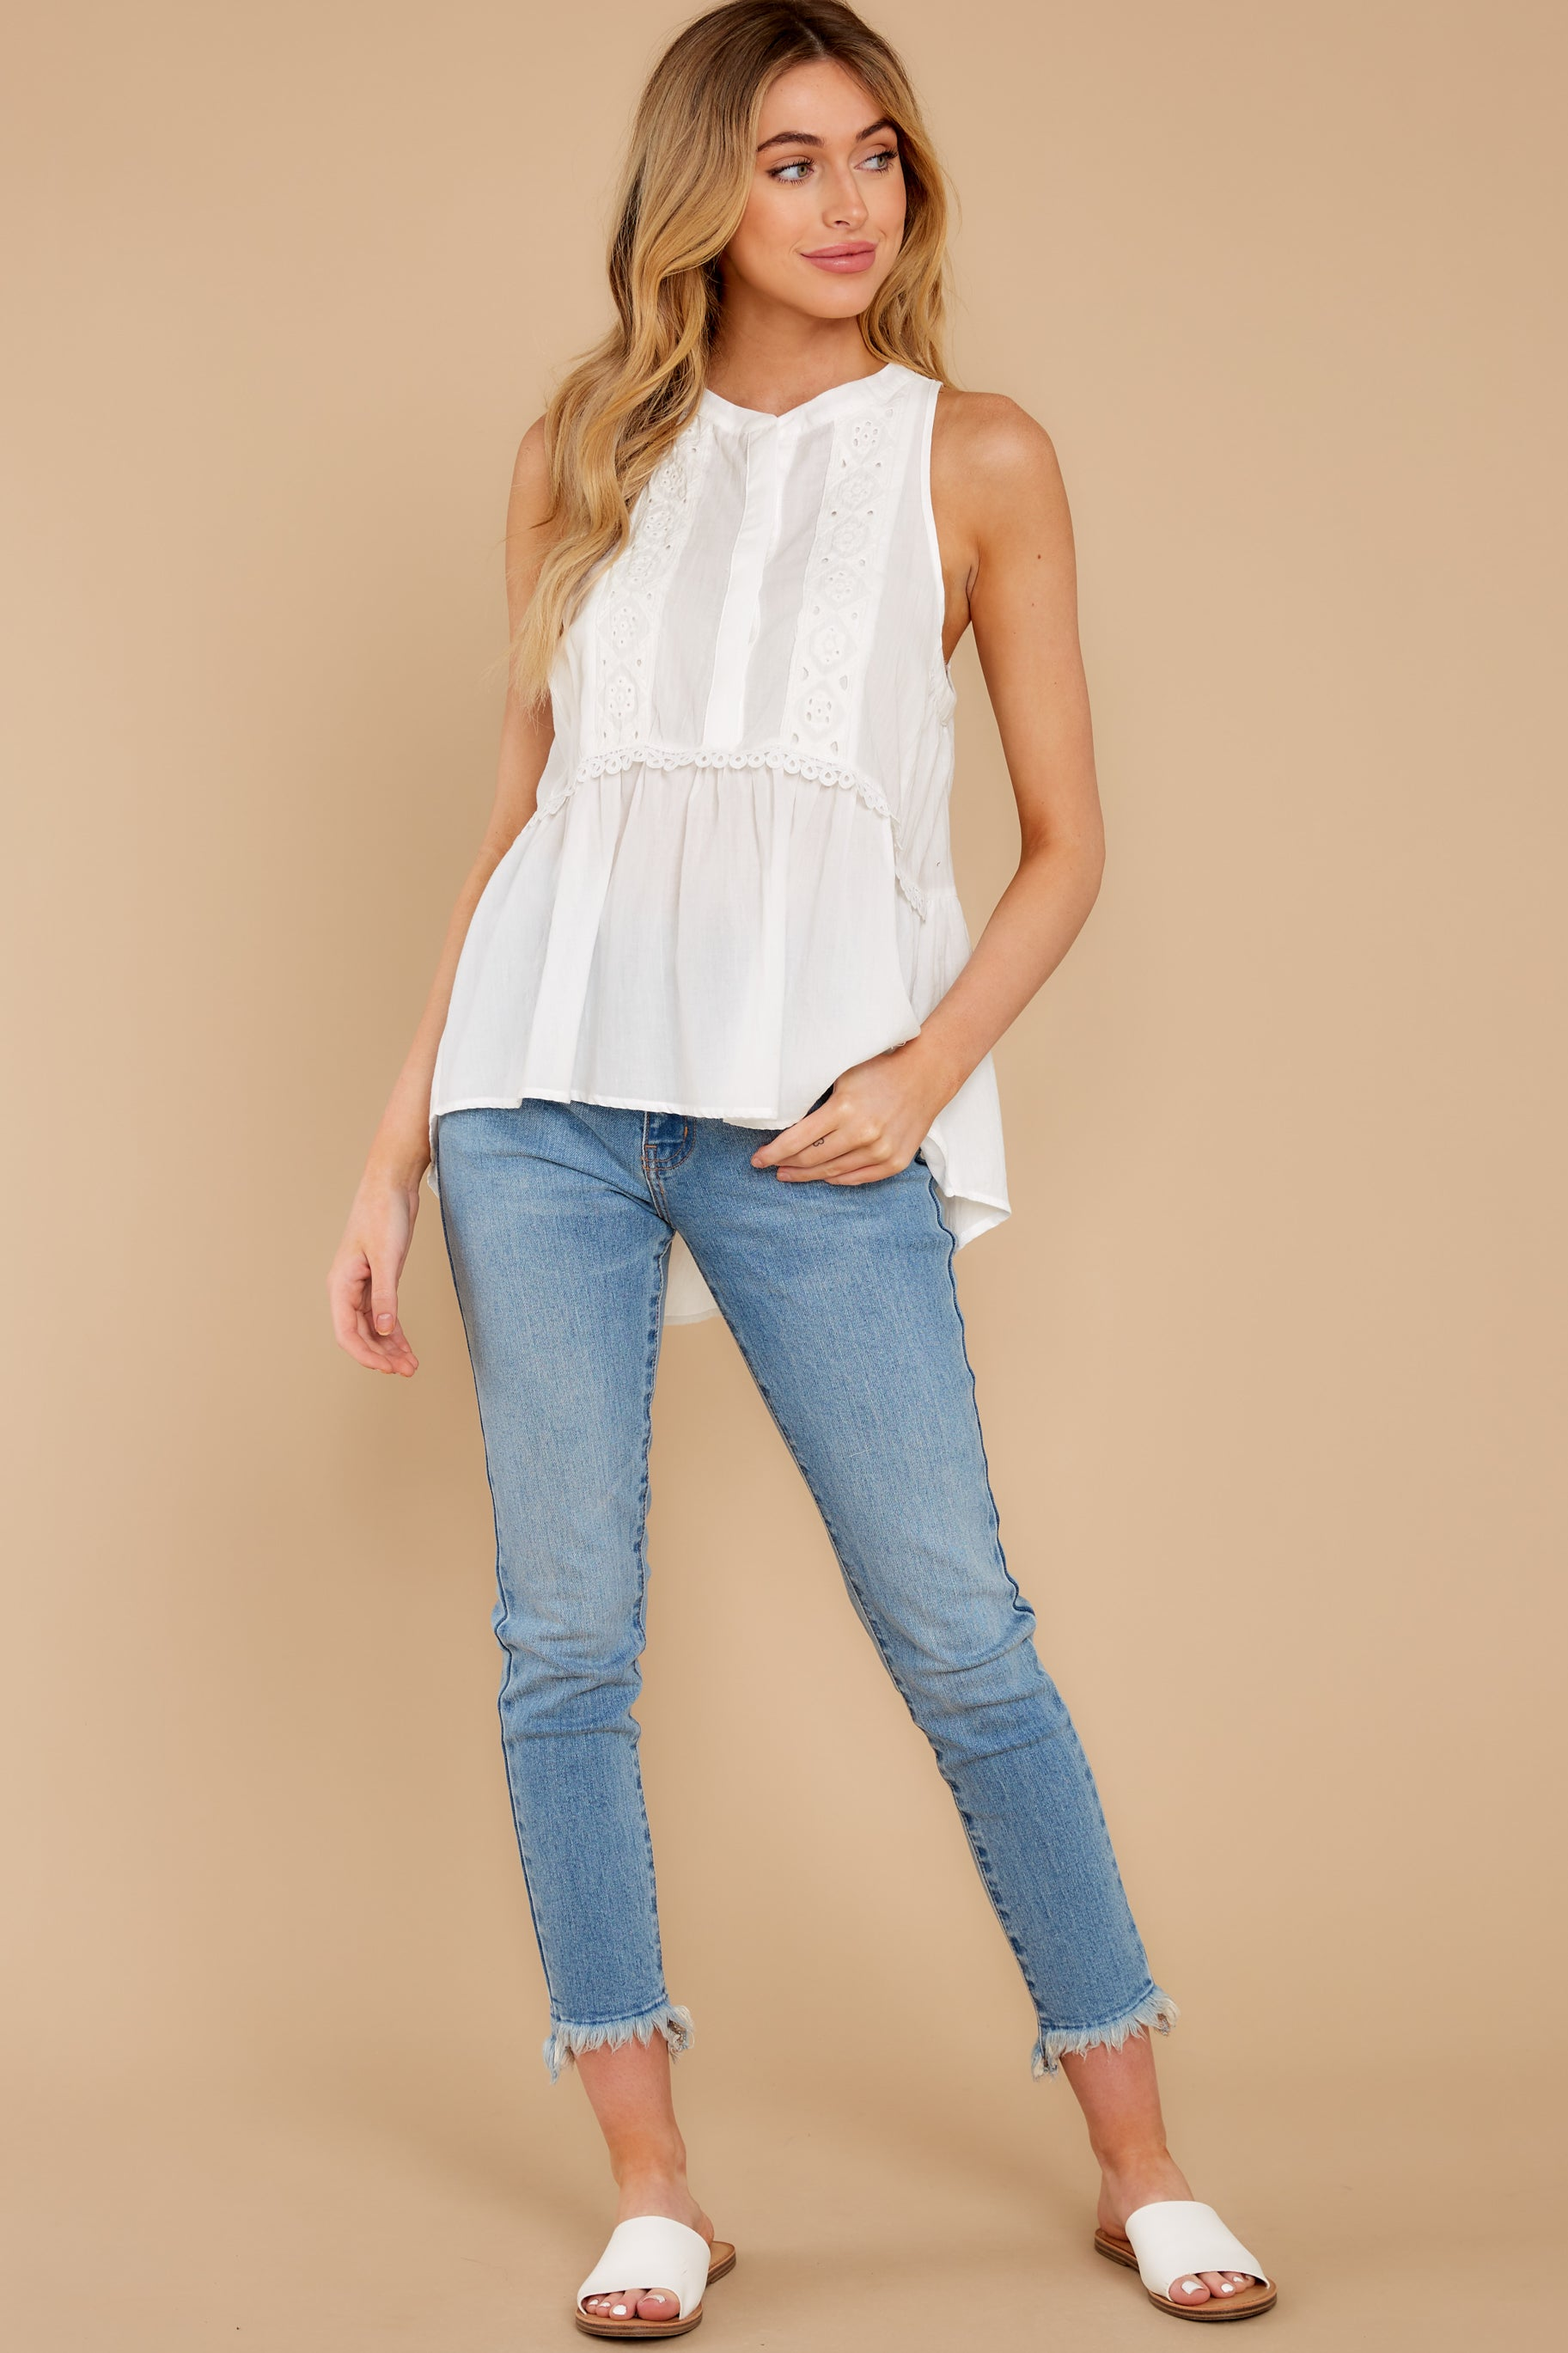 4 Angelic Whispers White Lace Top at reddress.com